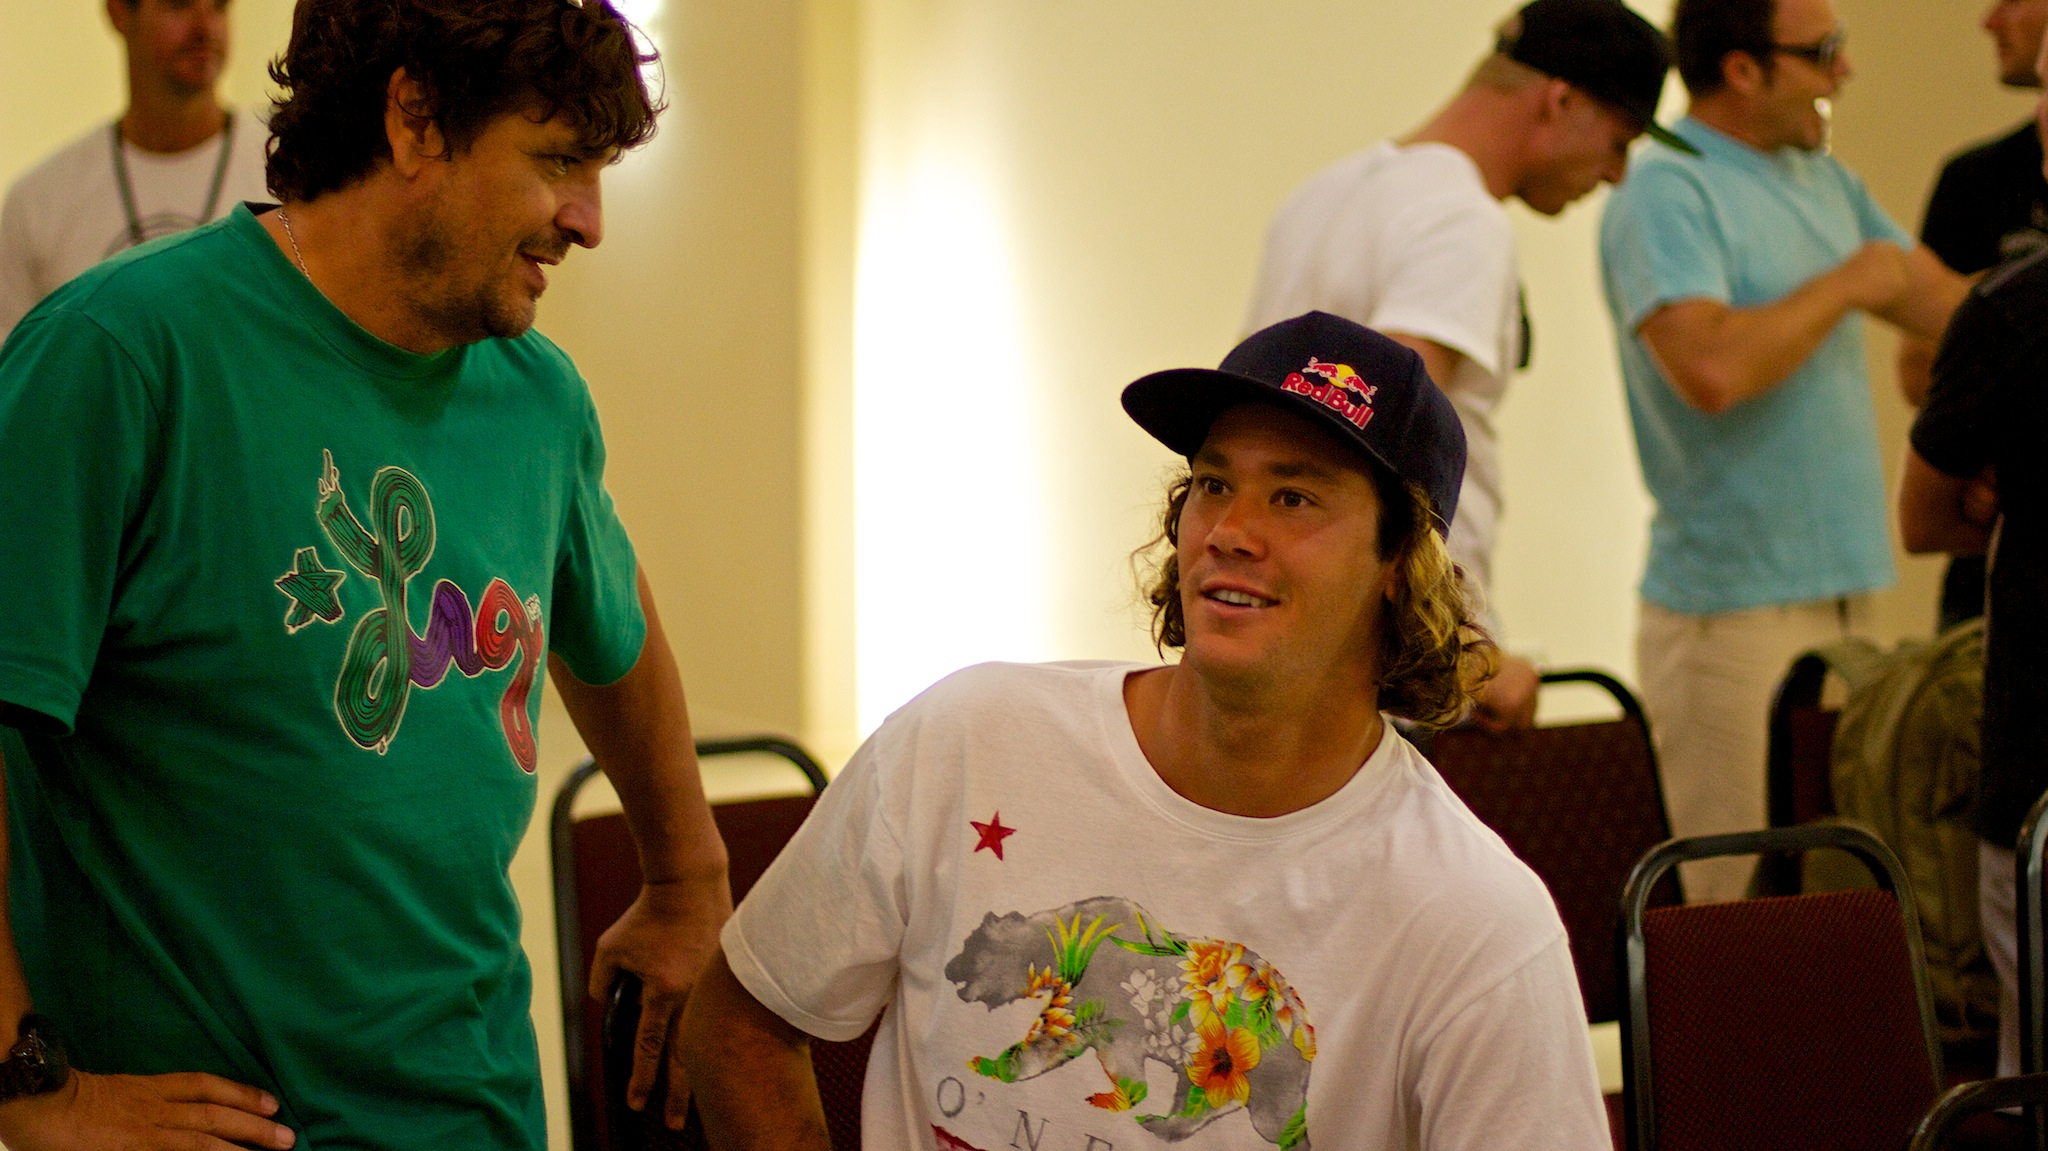 Jordy Smith e 'Pinga'